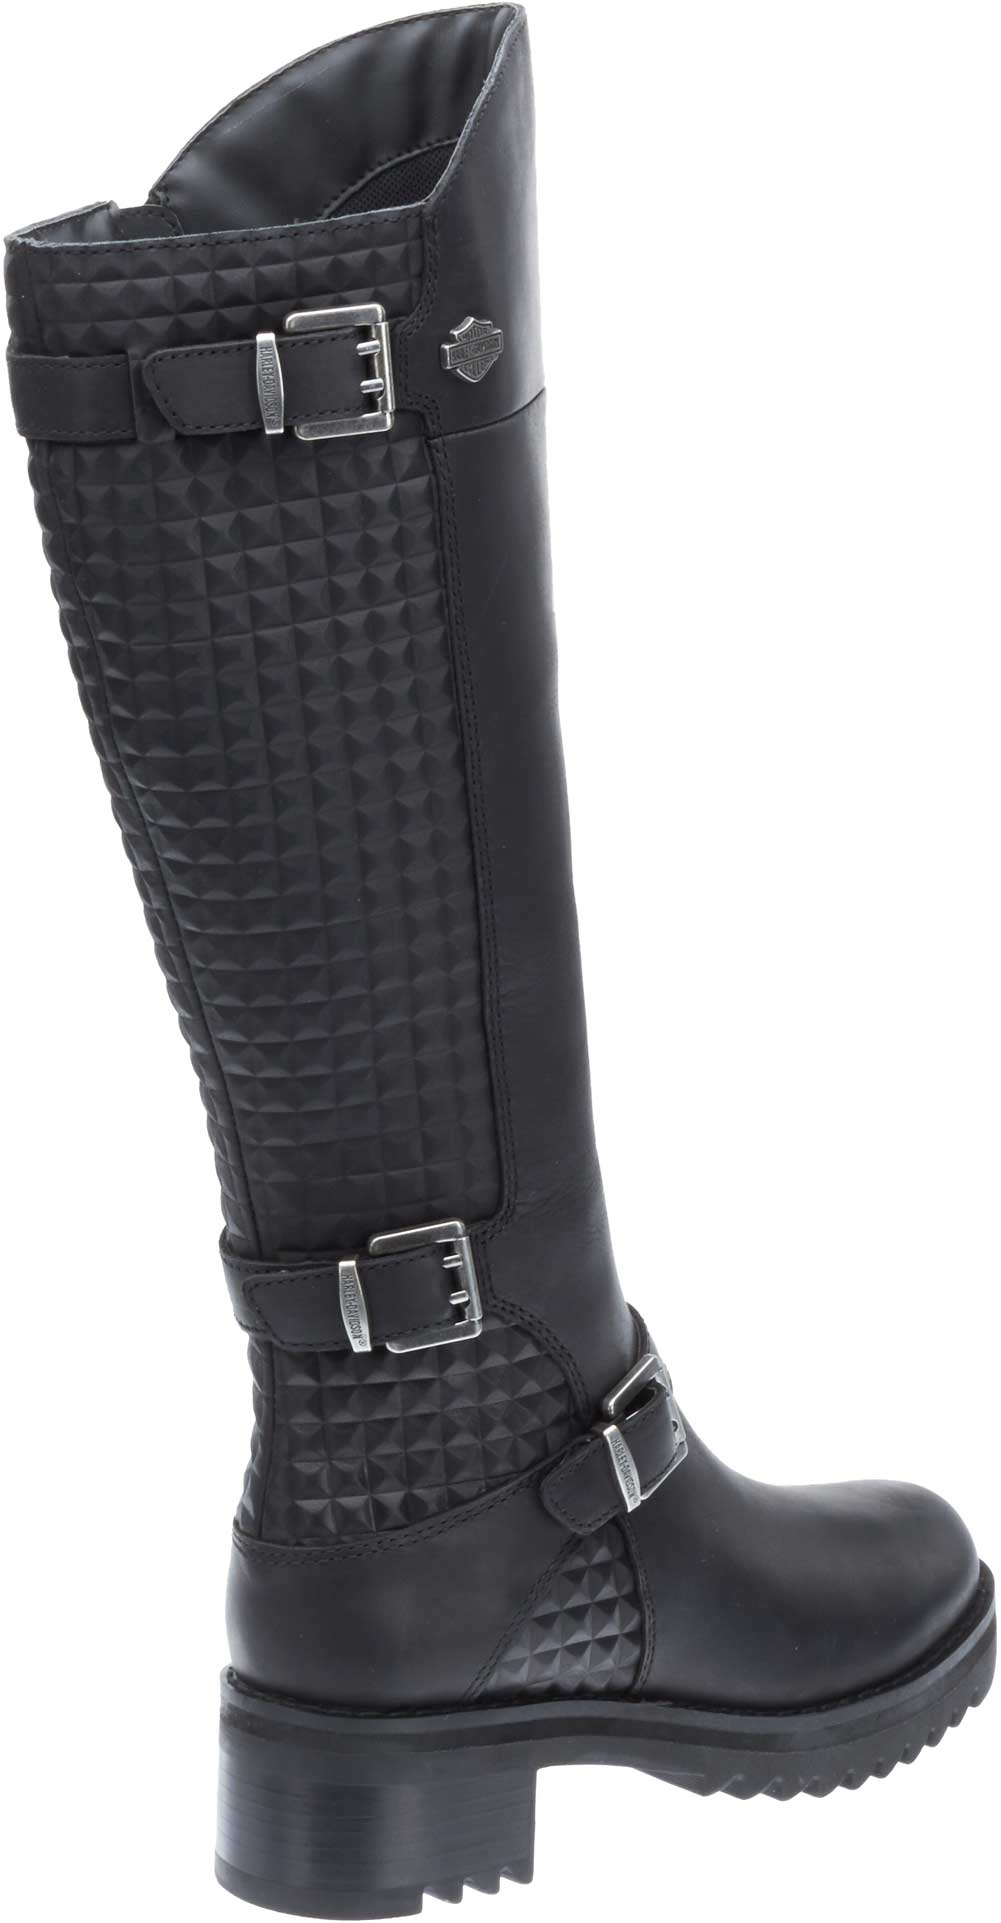 harley davidson s kedvale knee high leather